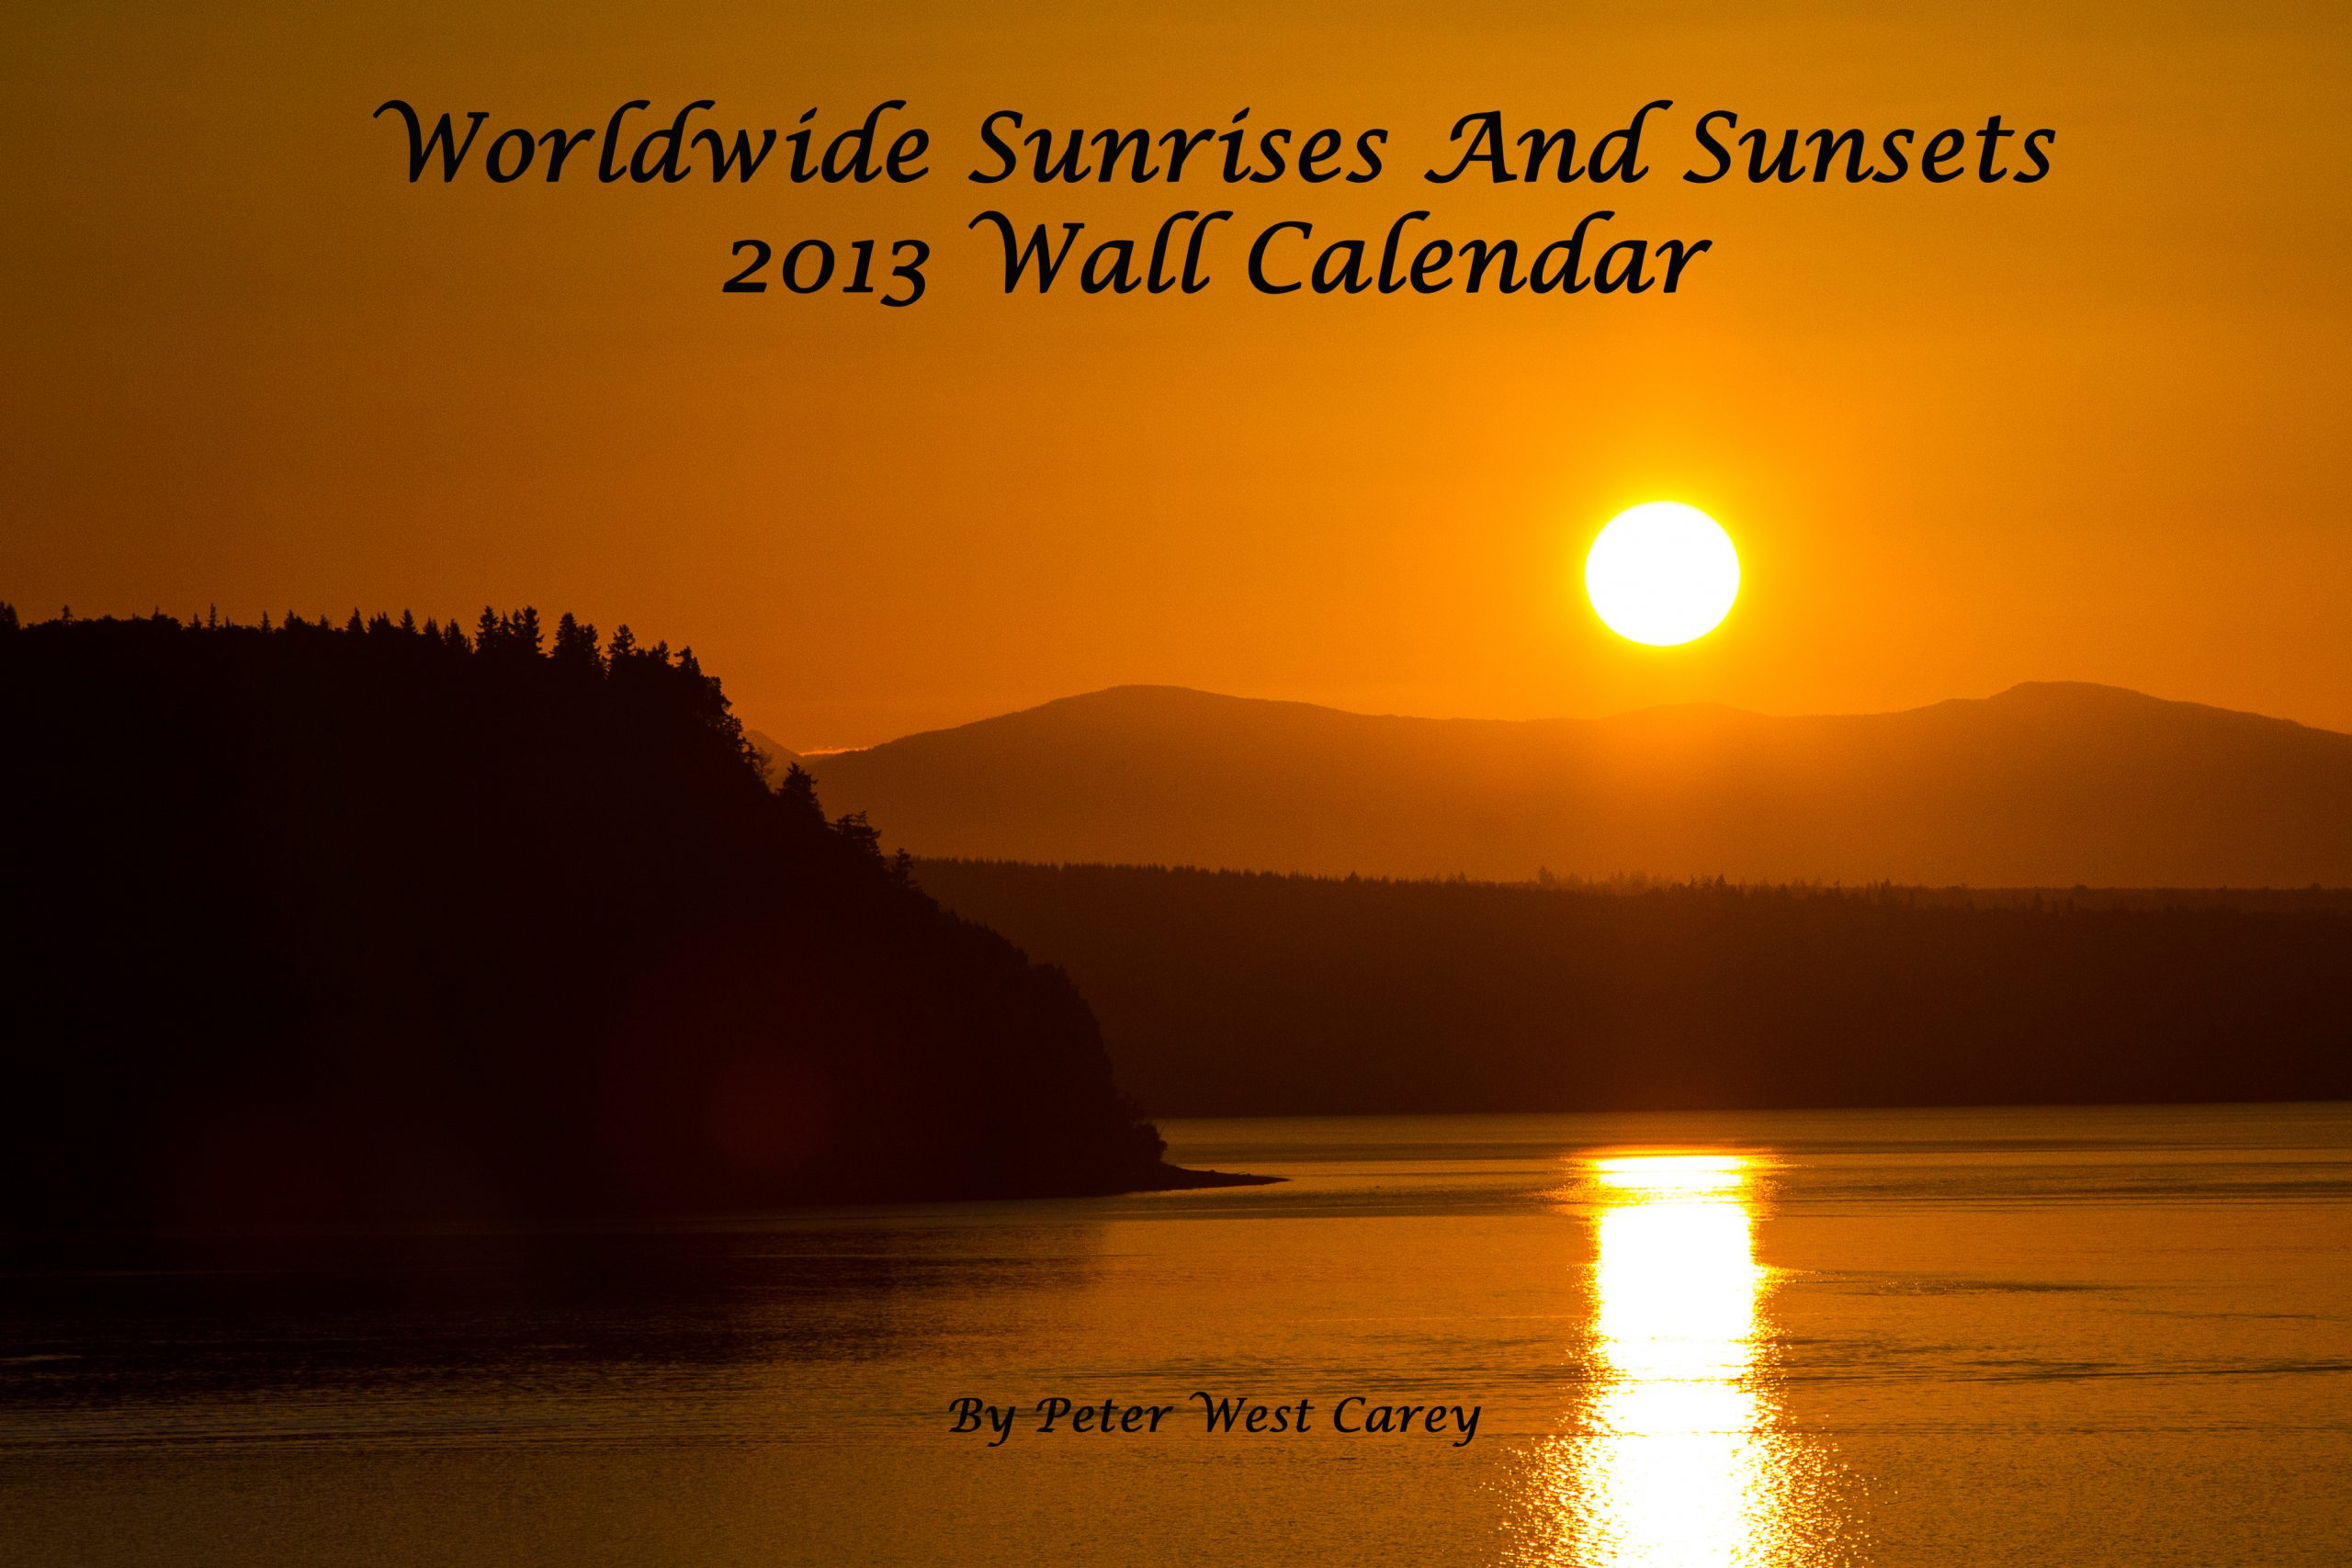 2013 Worldwise Sunrises And Sunsets Wall Calendar